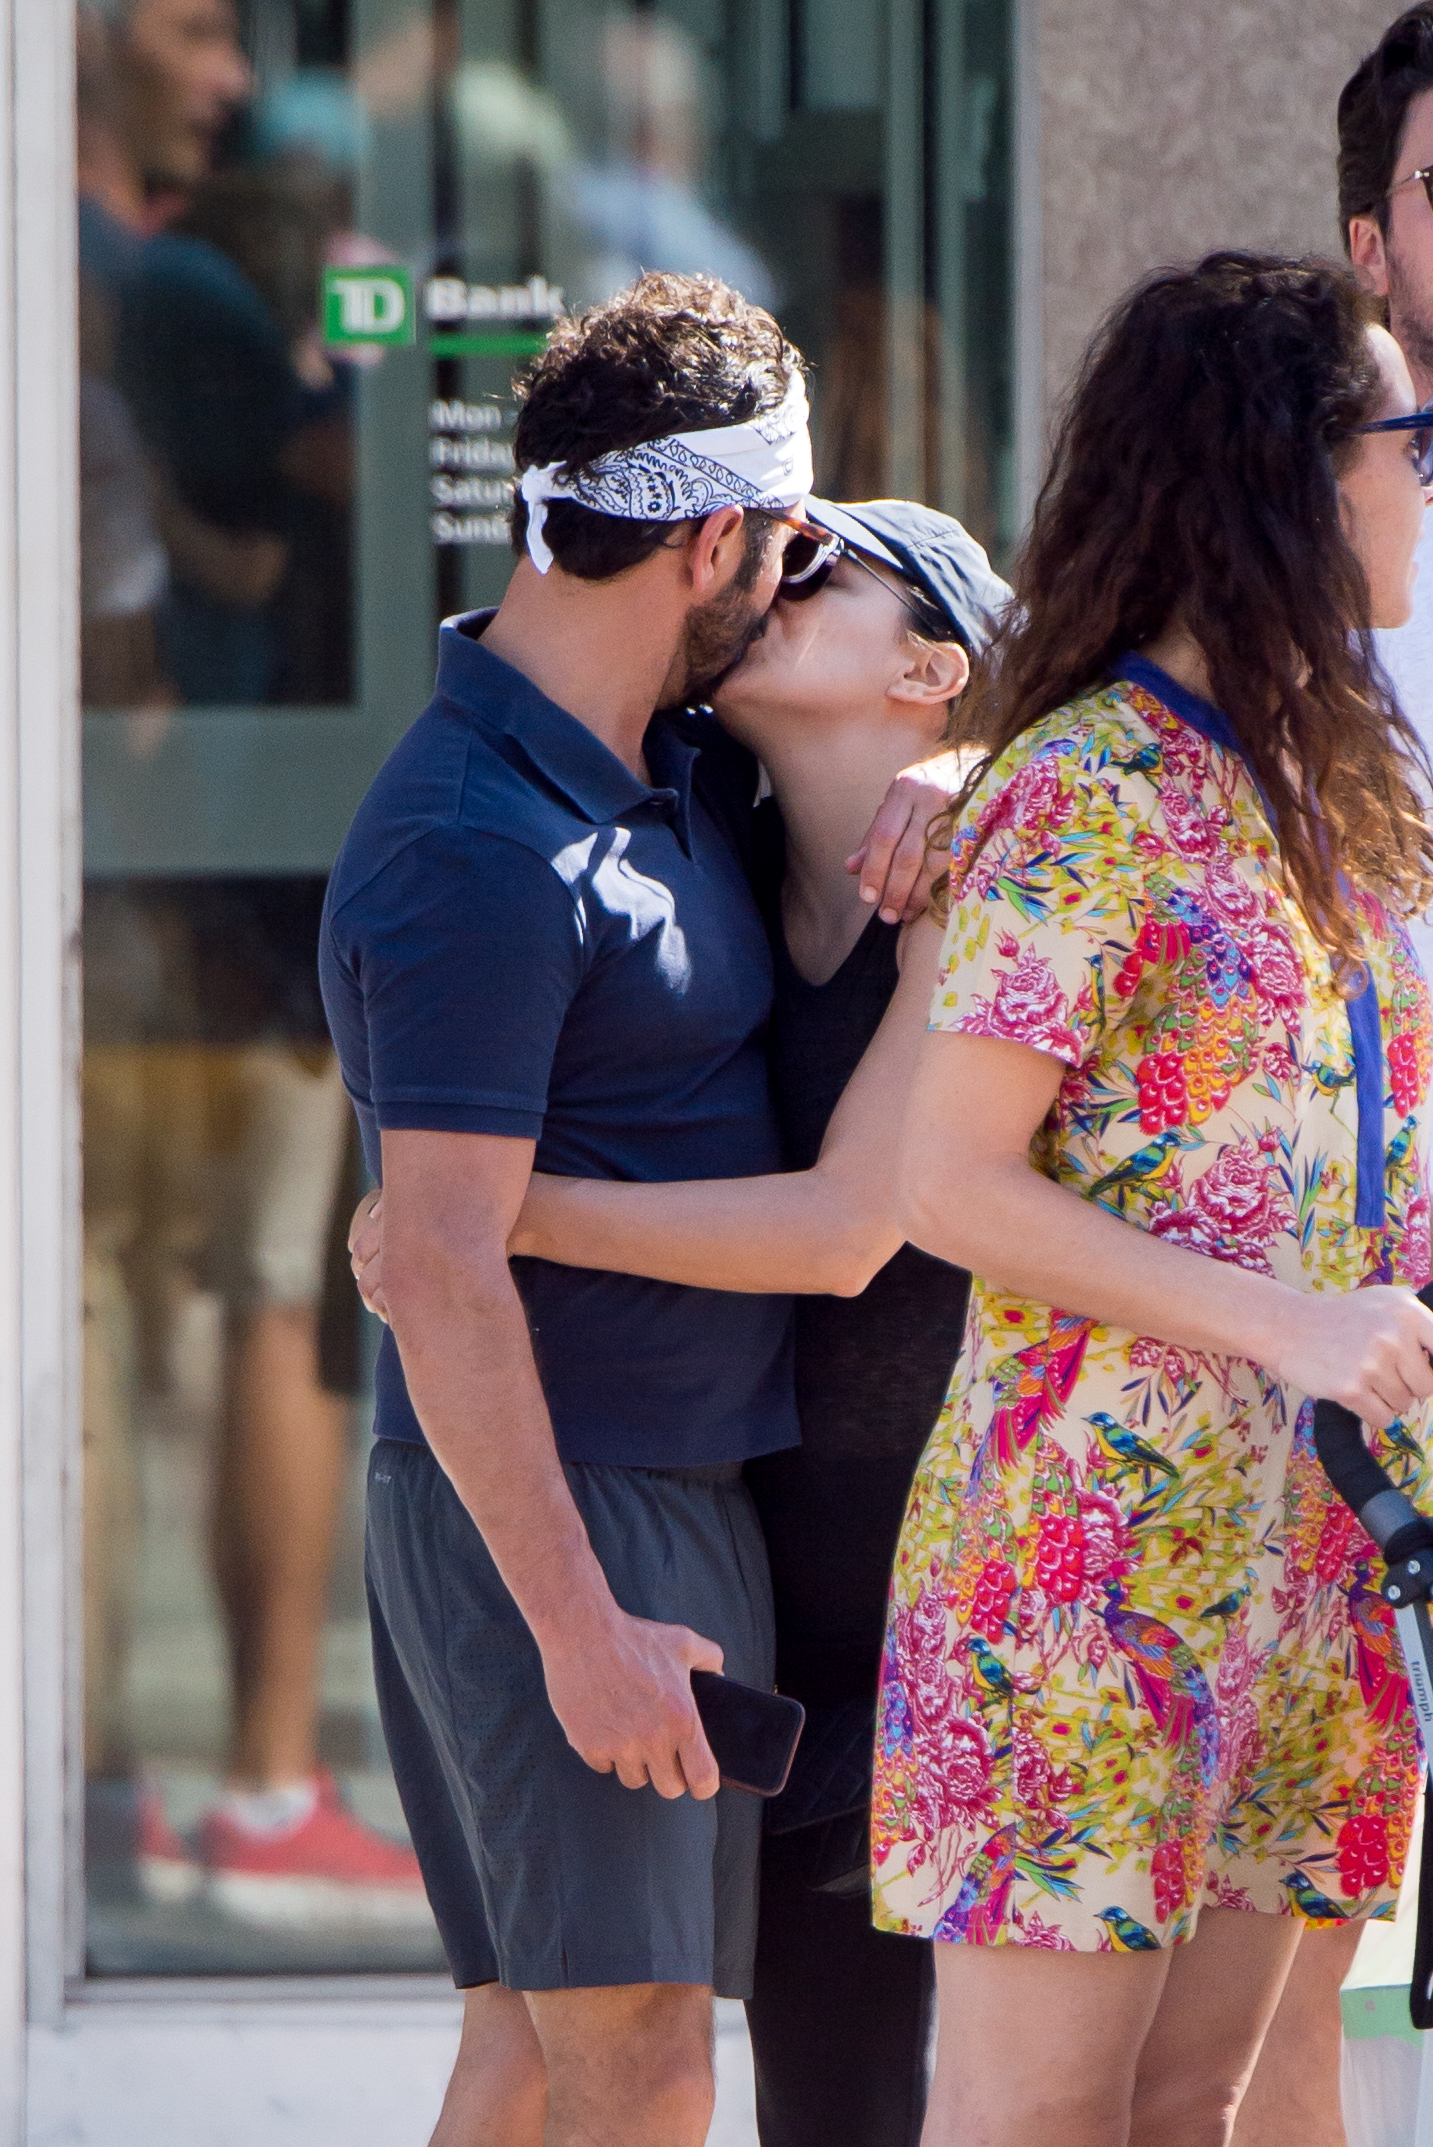 EXCLUSIVE: Pregnant Eva Longoria and her husband Jose Baston are seen kissing and walking arm in arm during a last minute Christmas shopping tour in Miami. They were joined by her friend Maria Bravo who is a Spanish actor and another male friend. The couple made a stop Williams Sonoma store.   <P> Pictured: Eva Longoria , Jose Baston <B>Ref: SPL1640252  241217   EXCLUSIVE</B><BR/> Picture by: Splash News<BR/> </P><P> <B>Splash News and Pictures</B><BR/> Los Angeles:310-821-2666<BR/> New York:212-619-2666<BR/> London:870-934-2666<BR/> <span id=